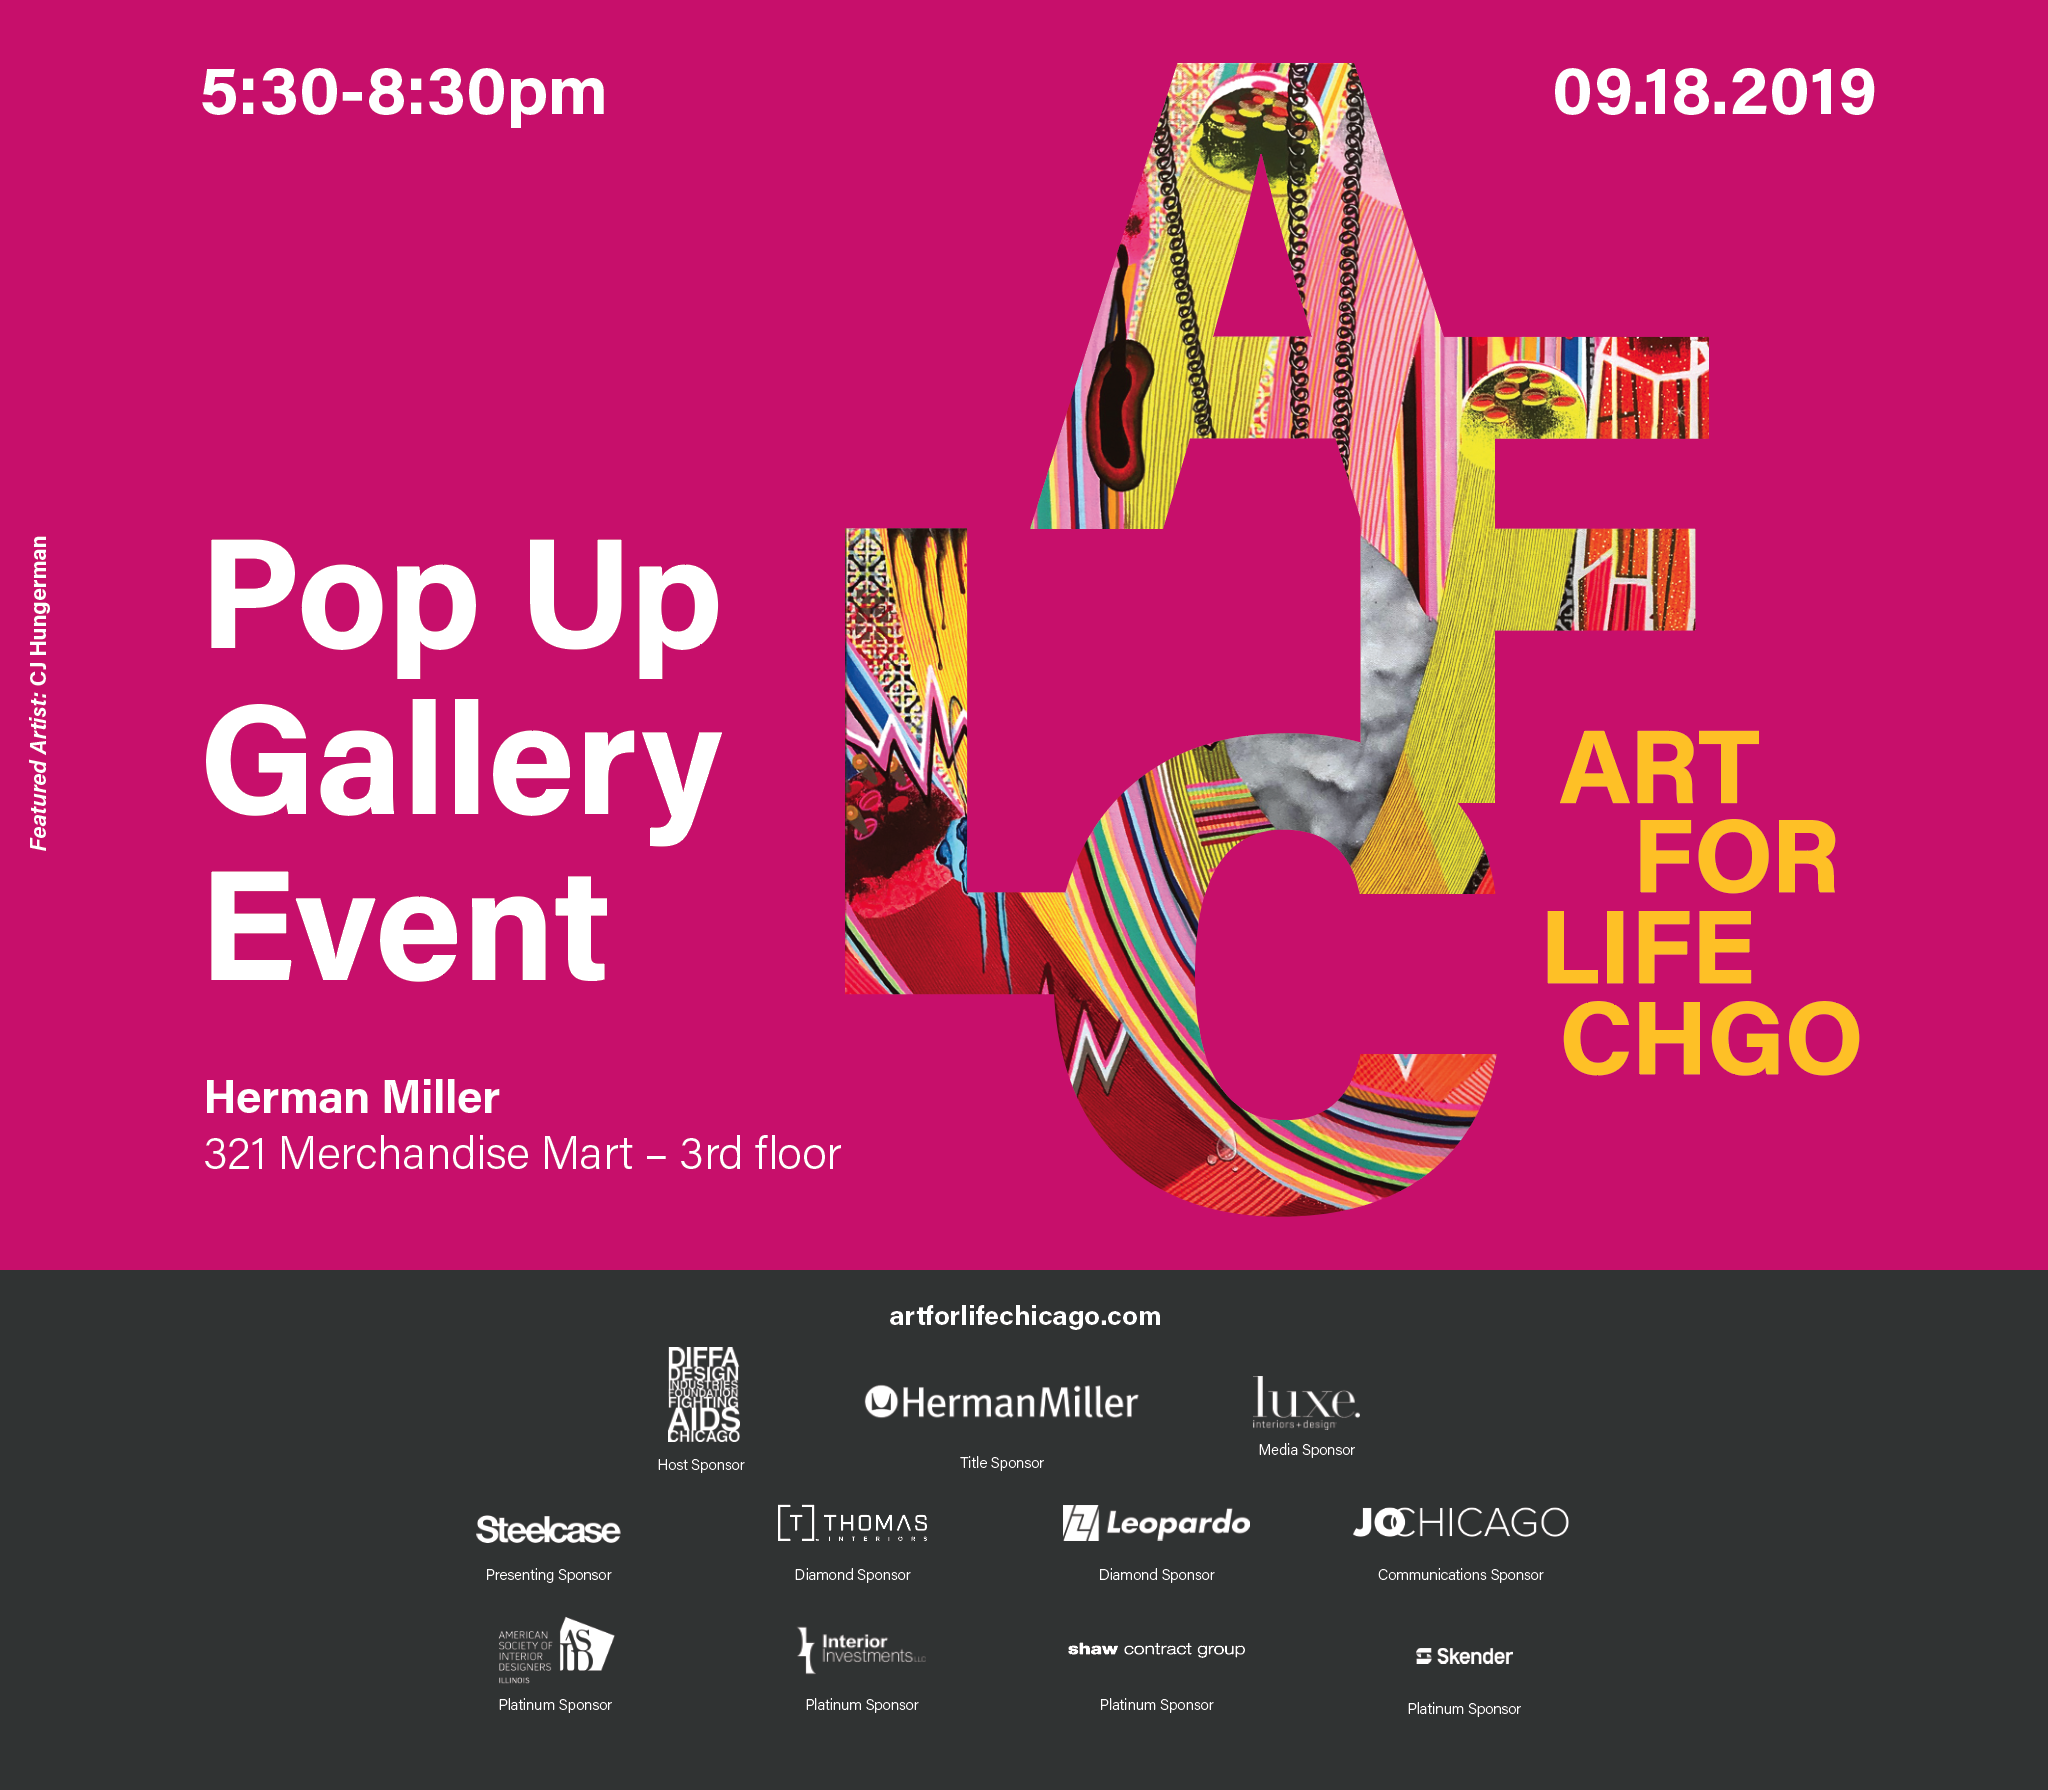 AFLC Gallery Pop Up at Herman Miller